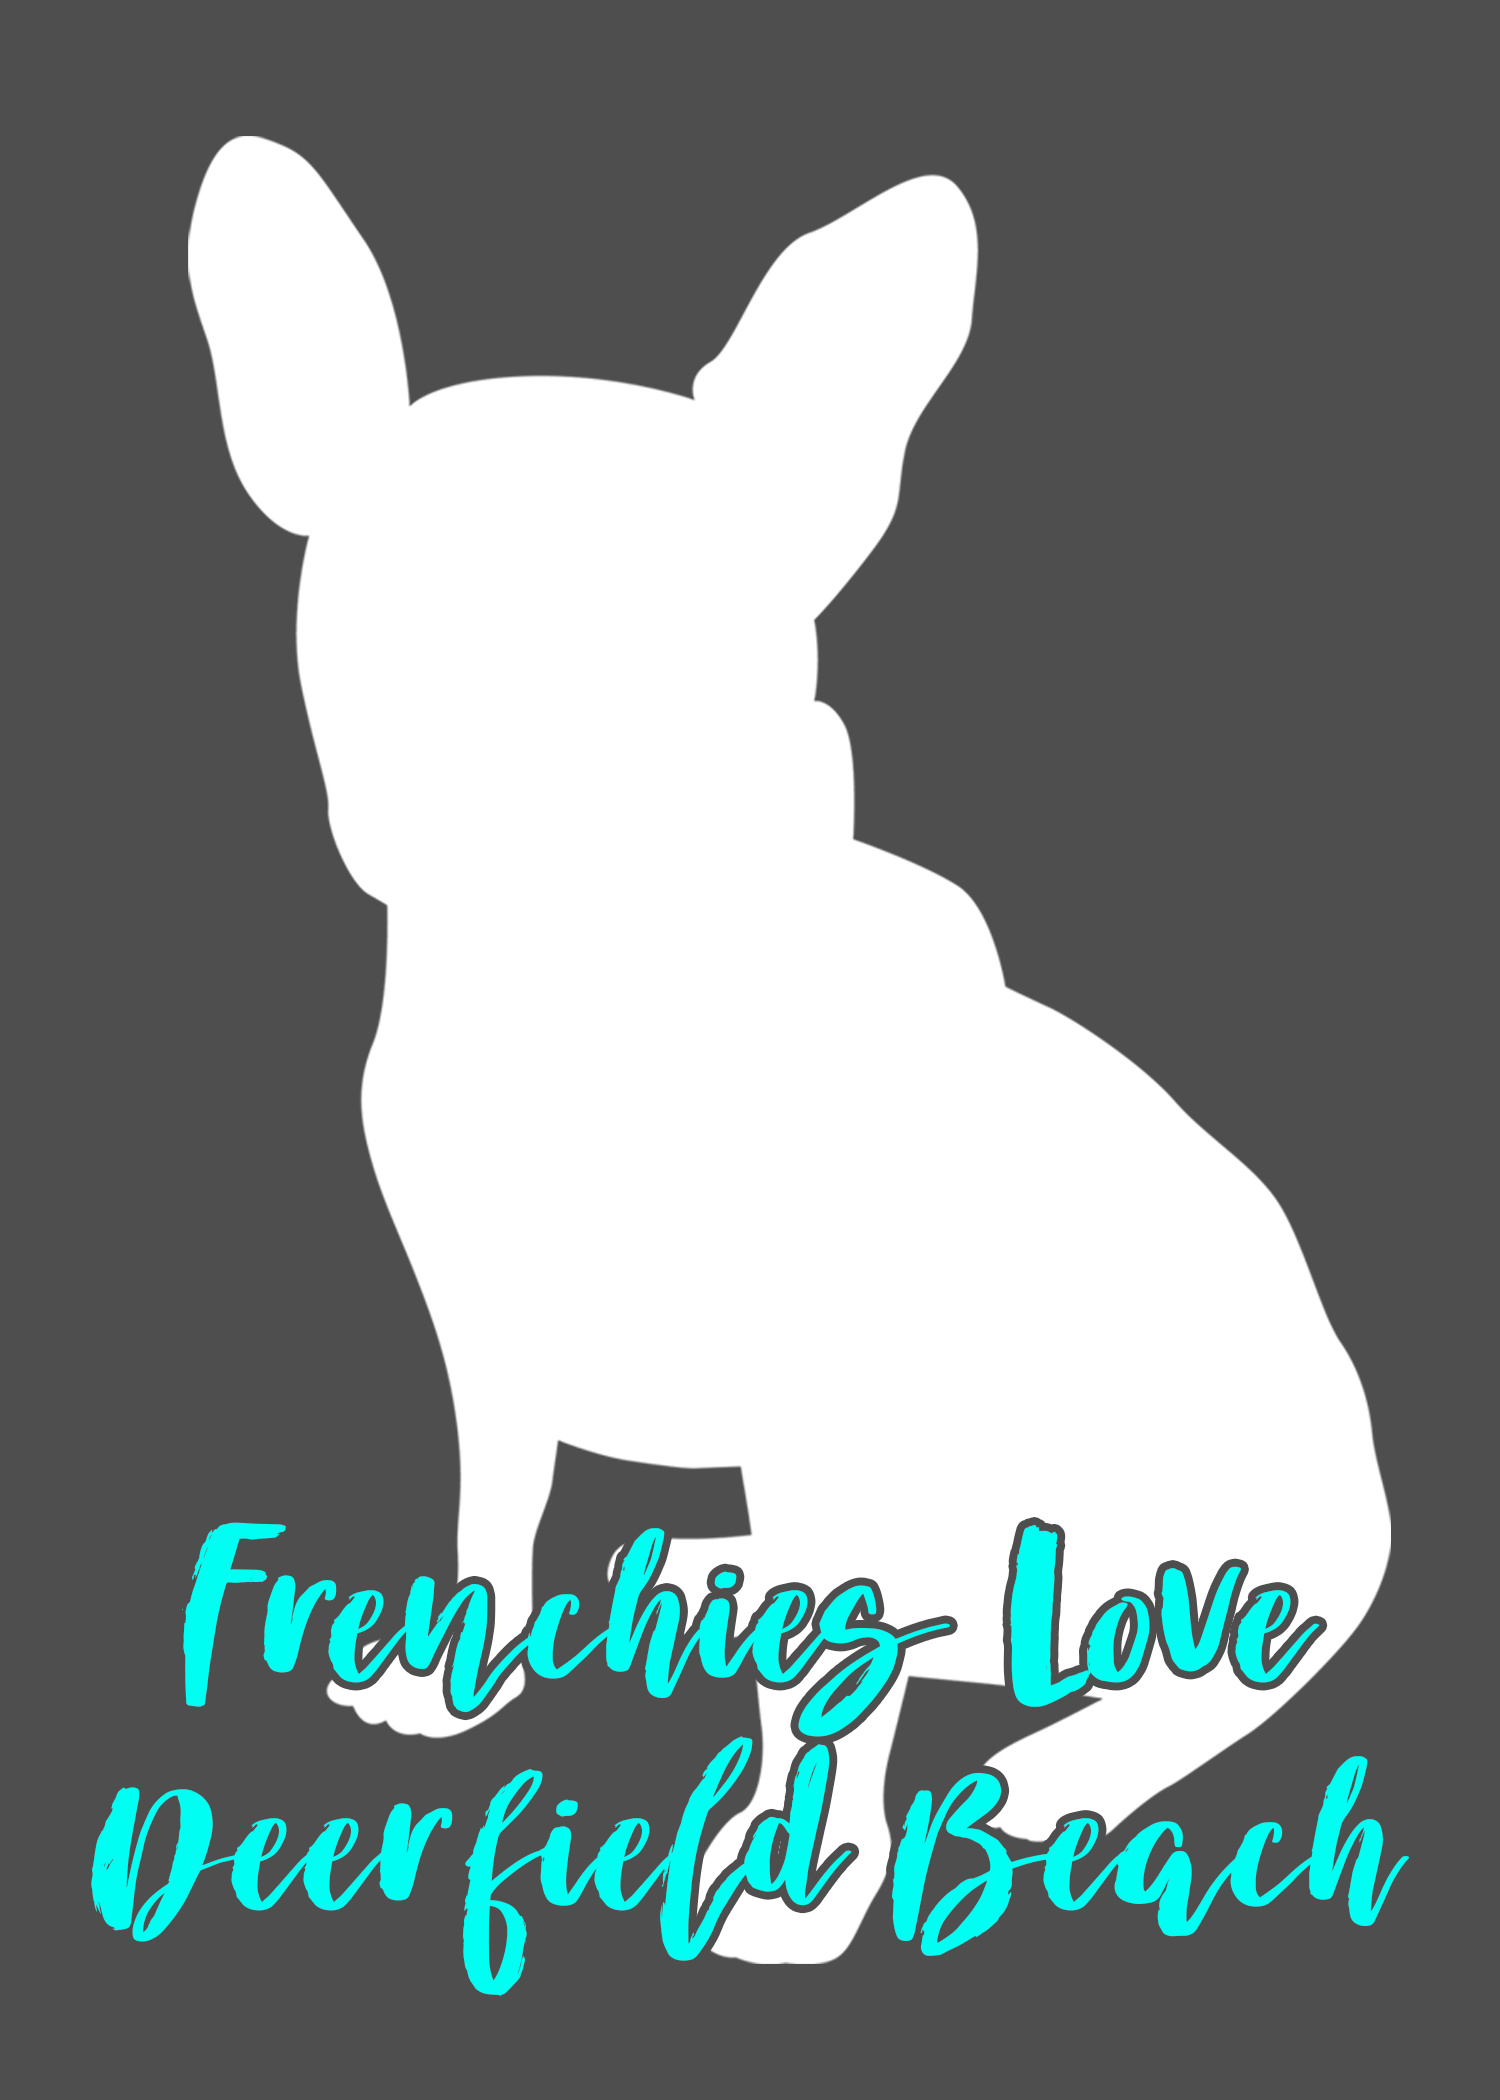 ABS_Dogslove_0010_Frenchies--Love-Deerfield-Beach.png.jpg